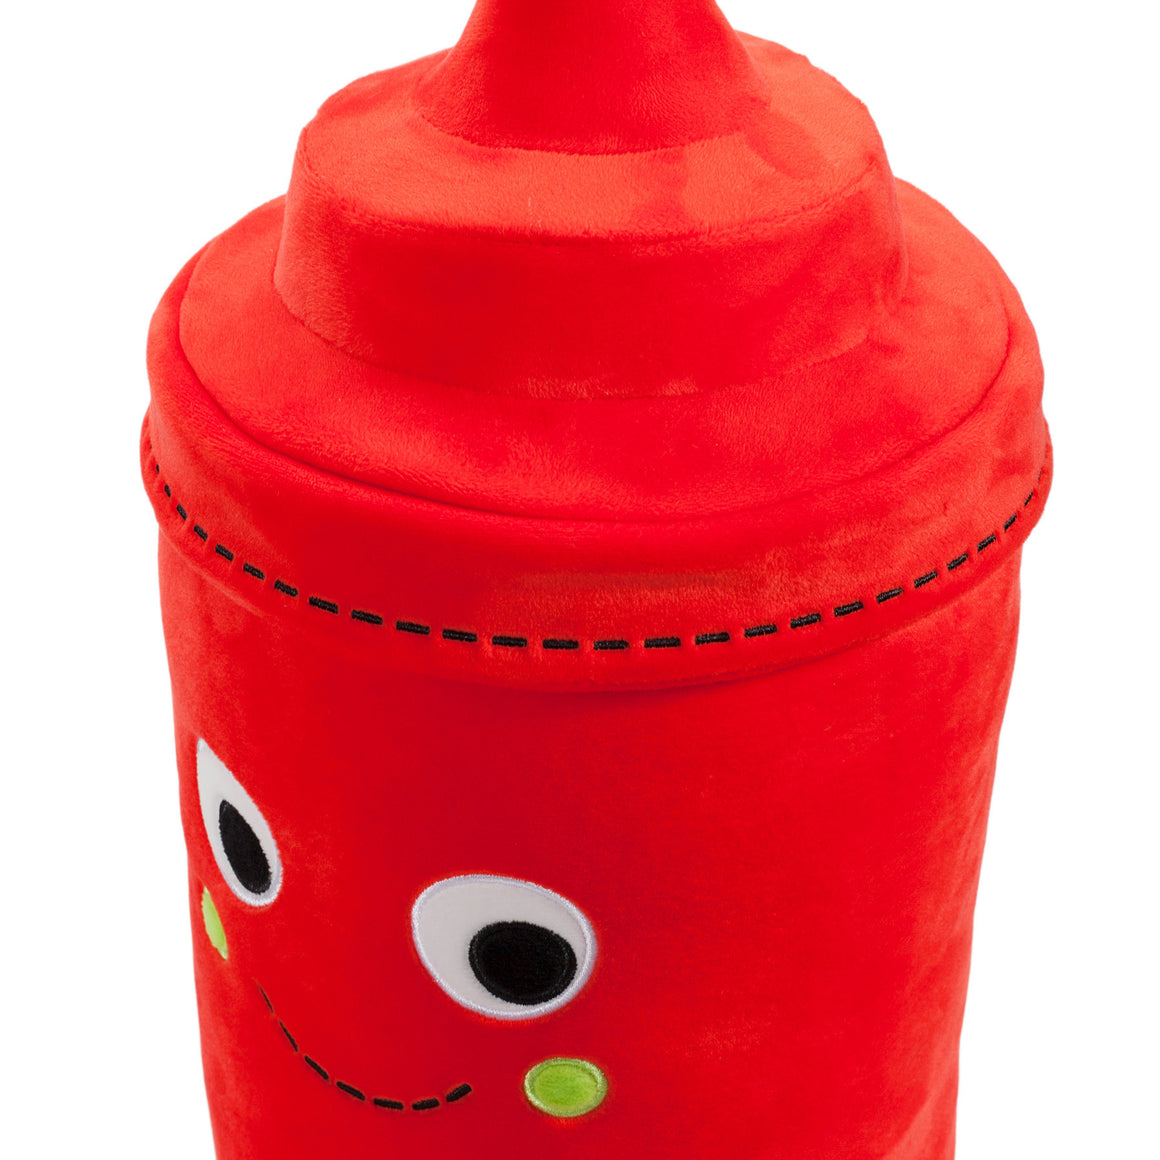 Yummy World Karl Ketchup 16-inch Plush Toy by Heidi Kenney x Kidrobot - Special Order - Mindzai  - 1